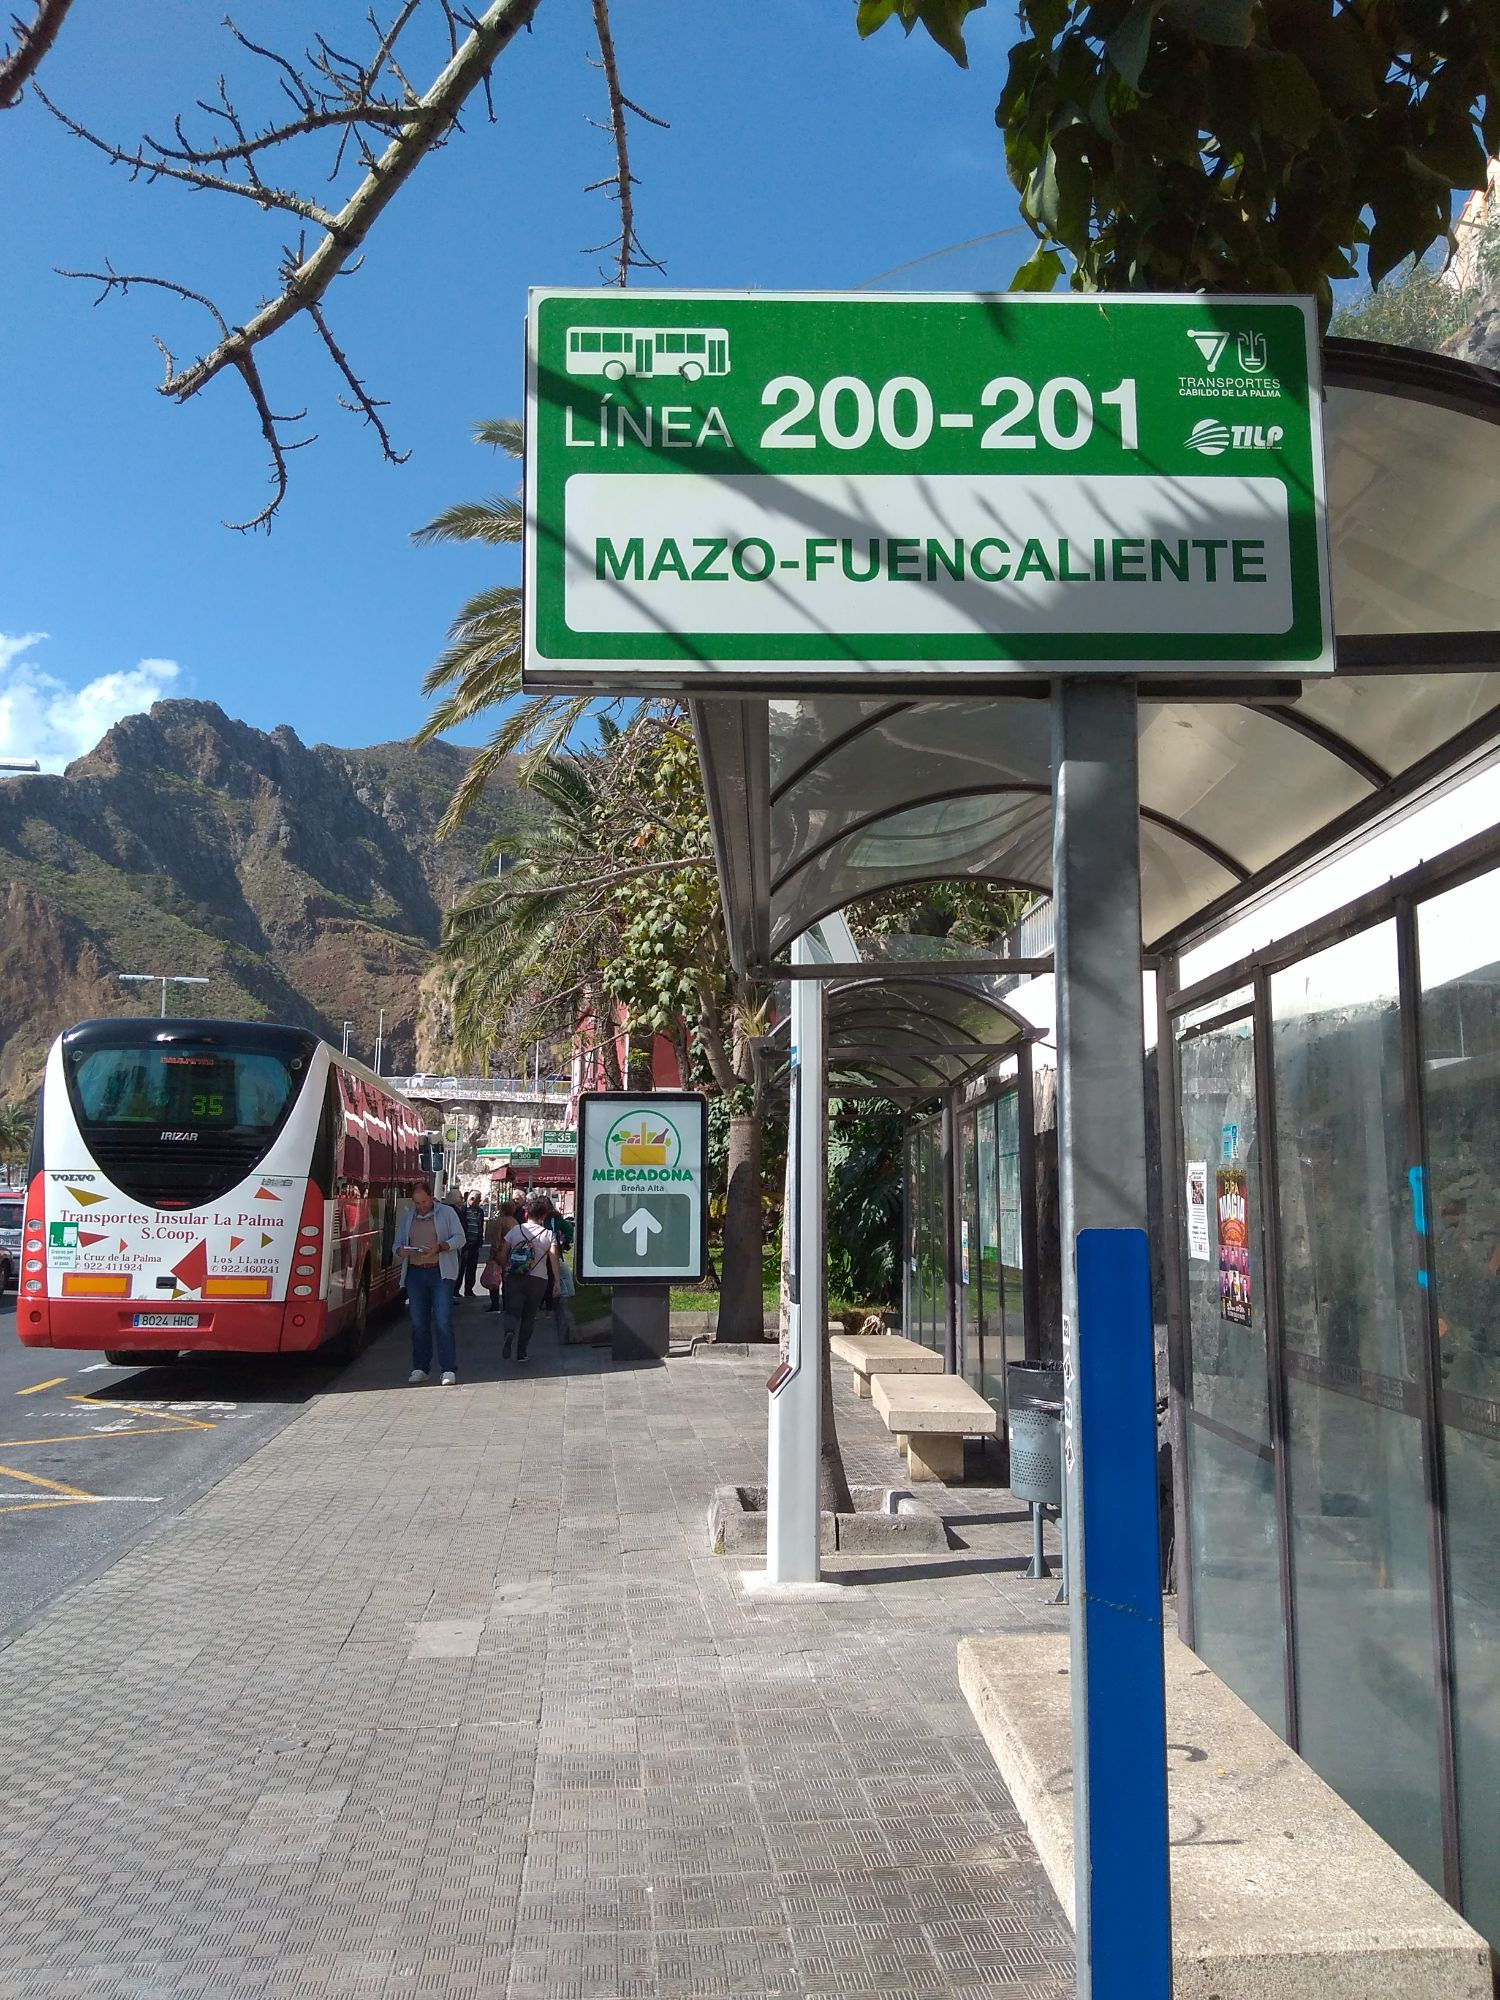 Bus to Fuencaliente from Santa Cruz